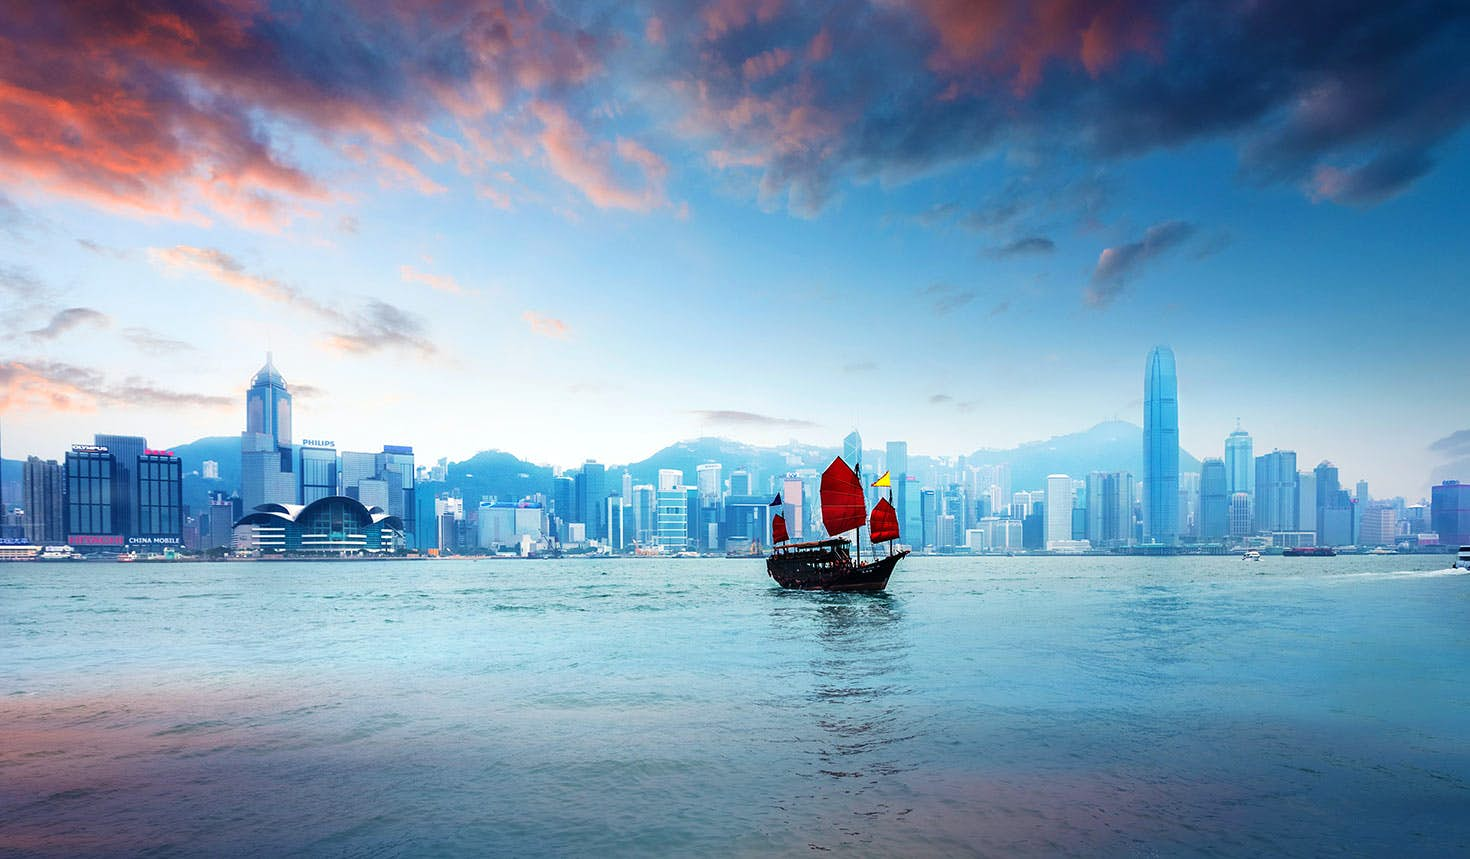 A traditional Chinese junk sailing across Victoria Harbour, Hong Kong Image: chinaface / Getty Images